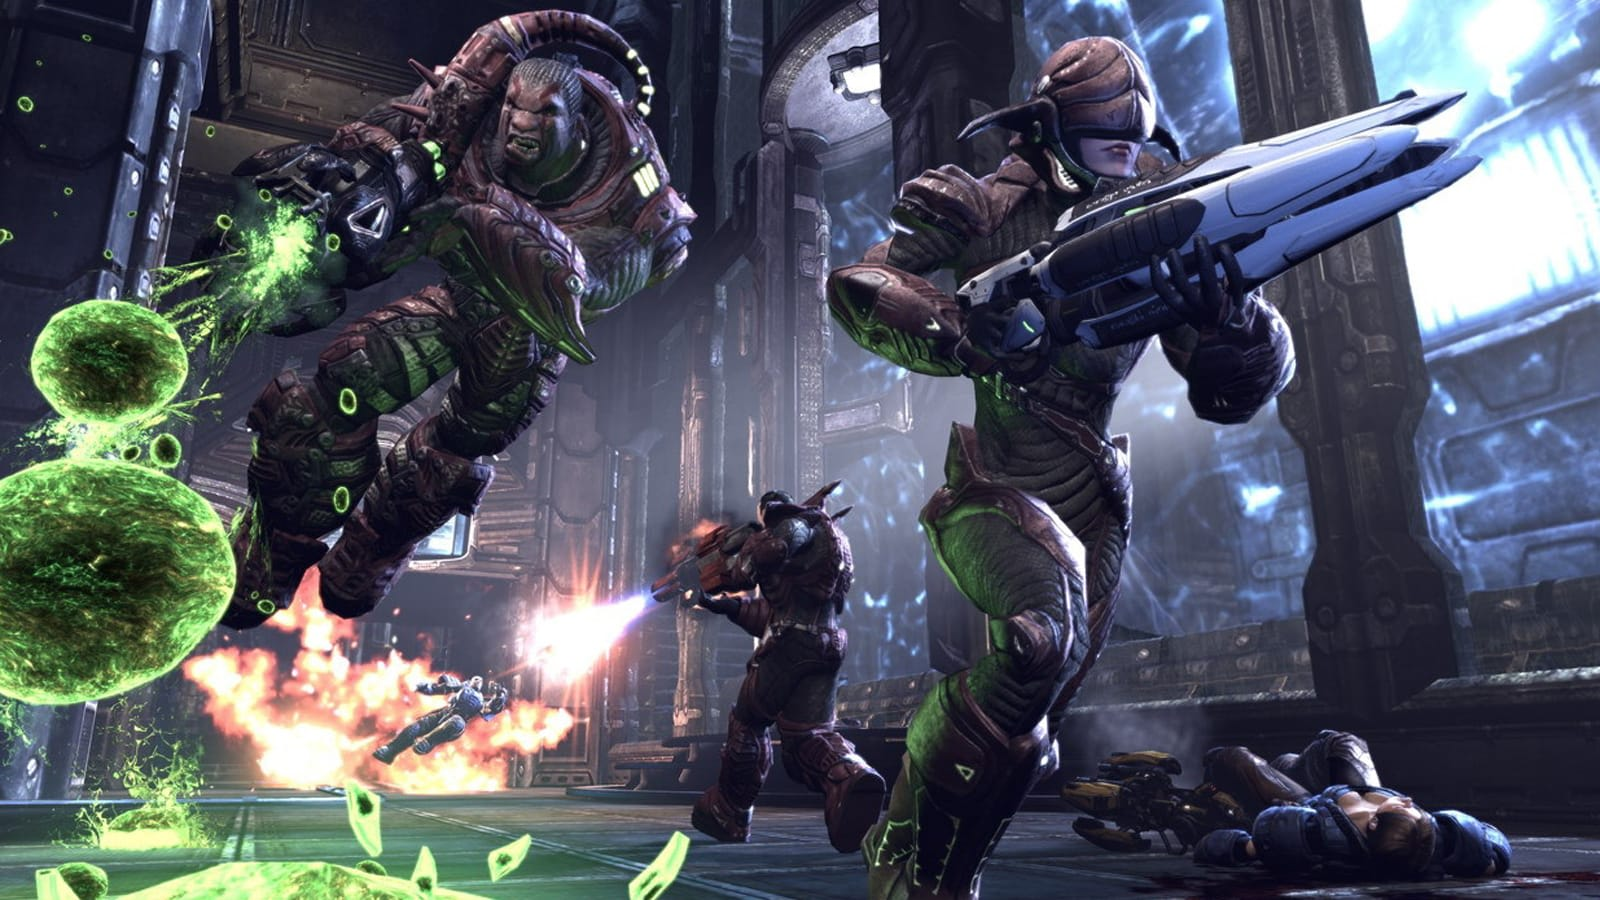 Epic stops work on 'Unreal Tournament' sequel because of 'Fortnite'